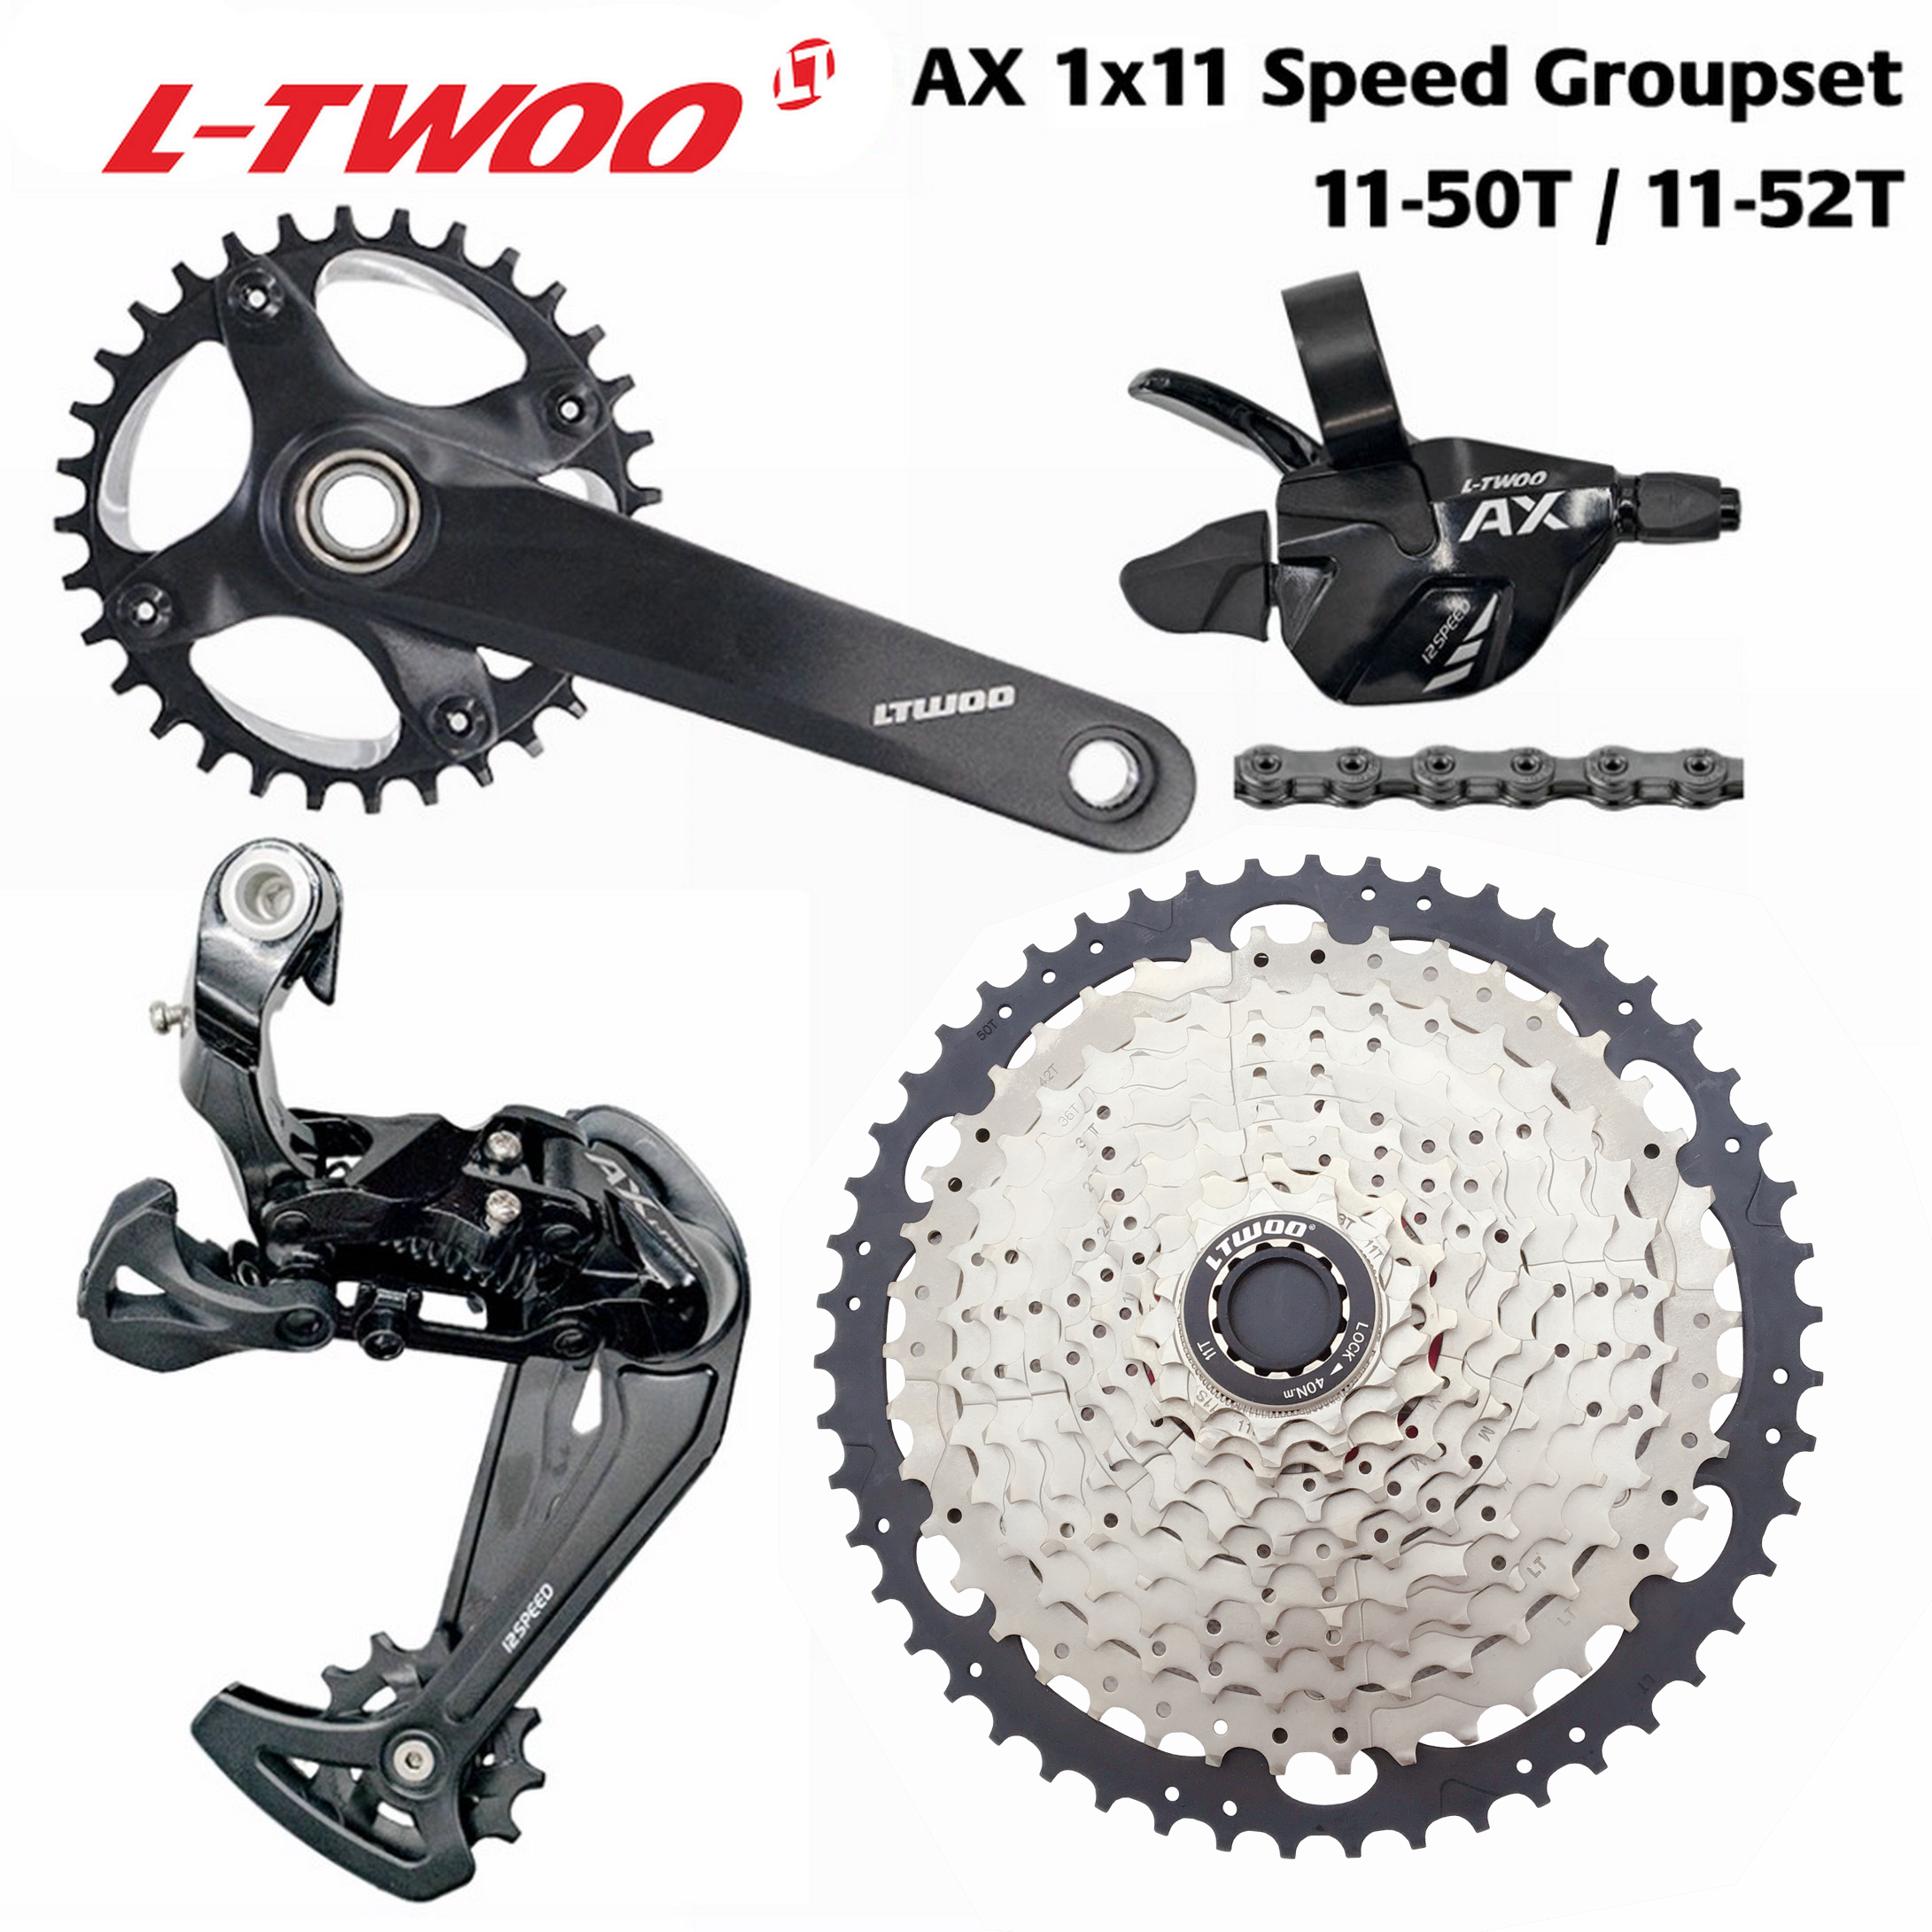 LTWOO MTB 1x11 Speed Groupset  AX11 46T 50T 52T Cassette//Chainring 11S group